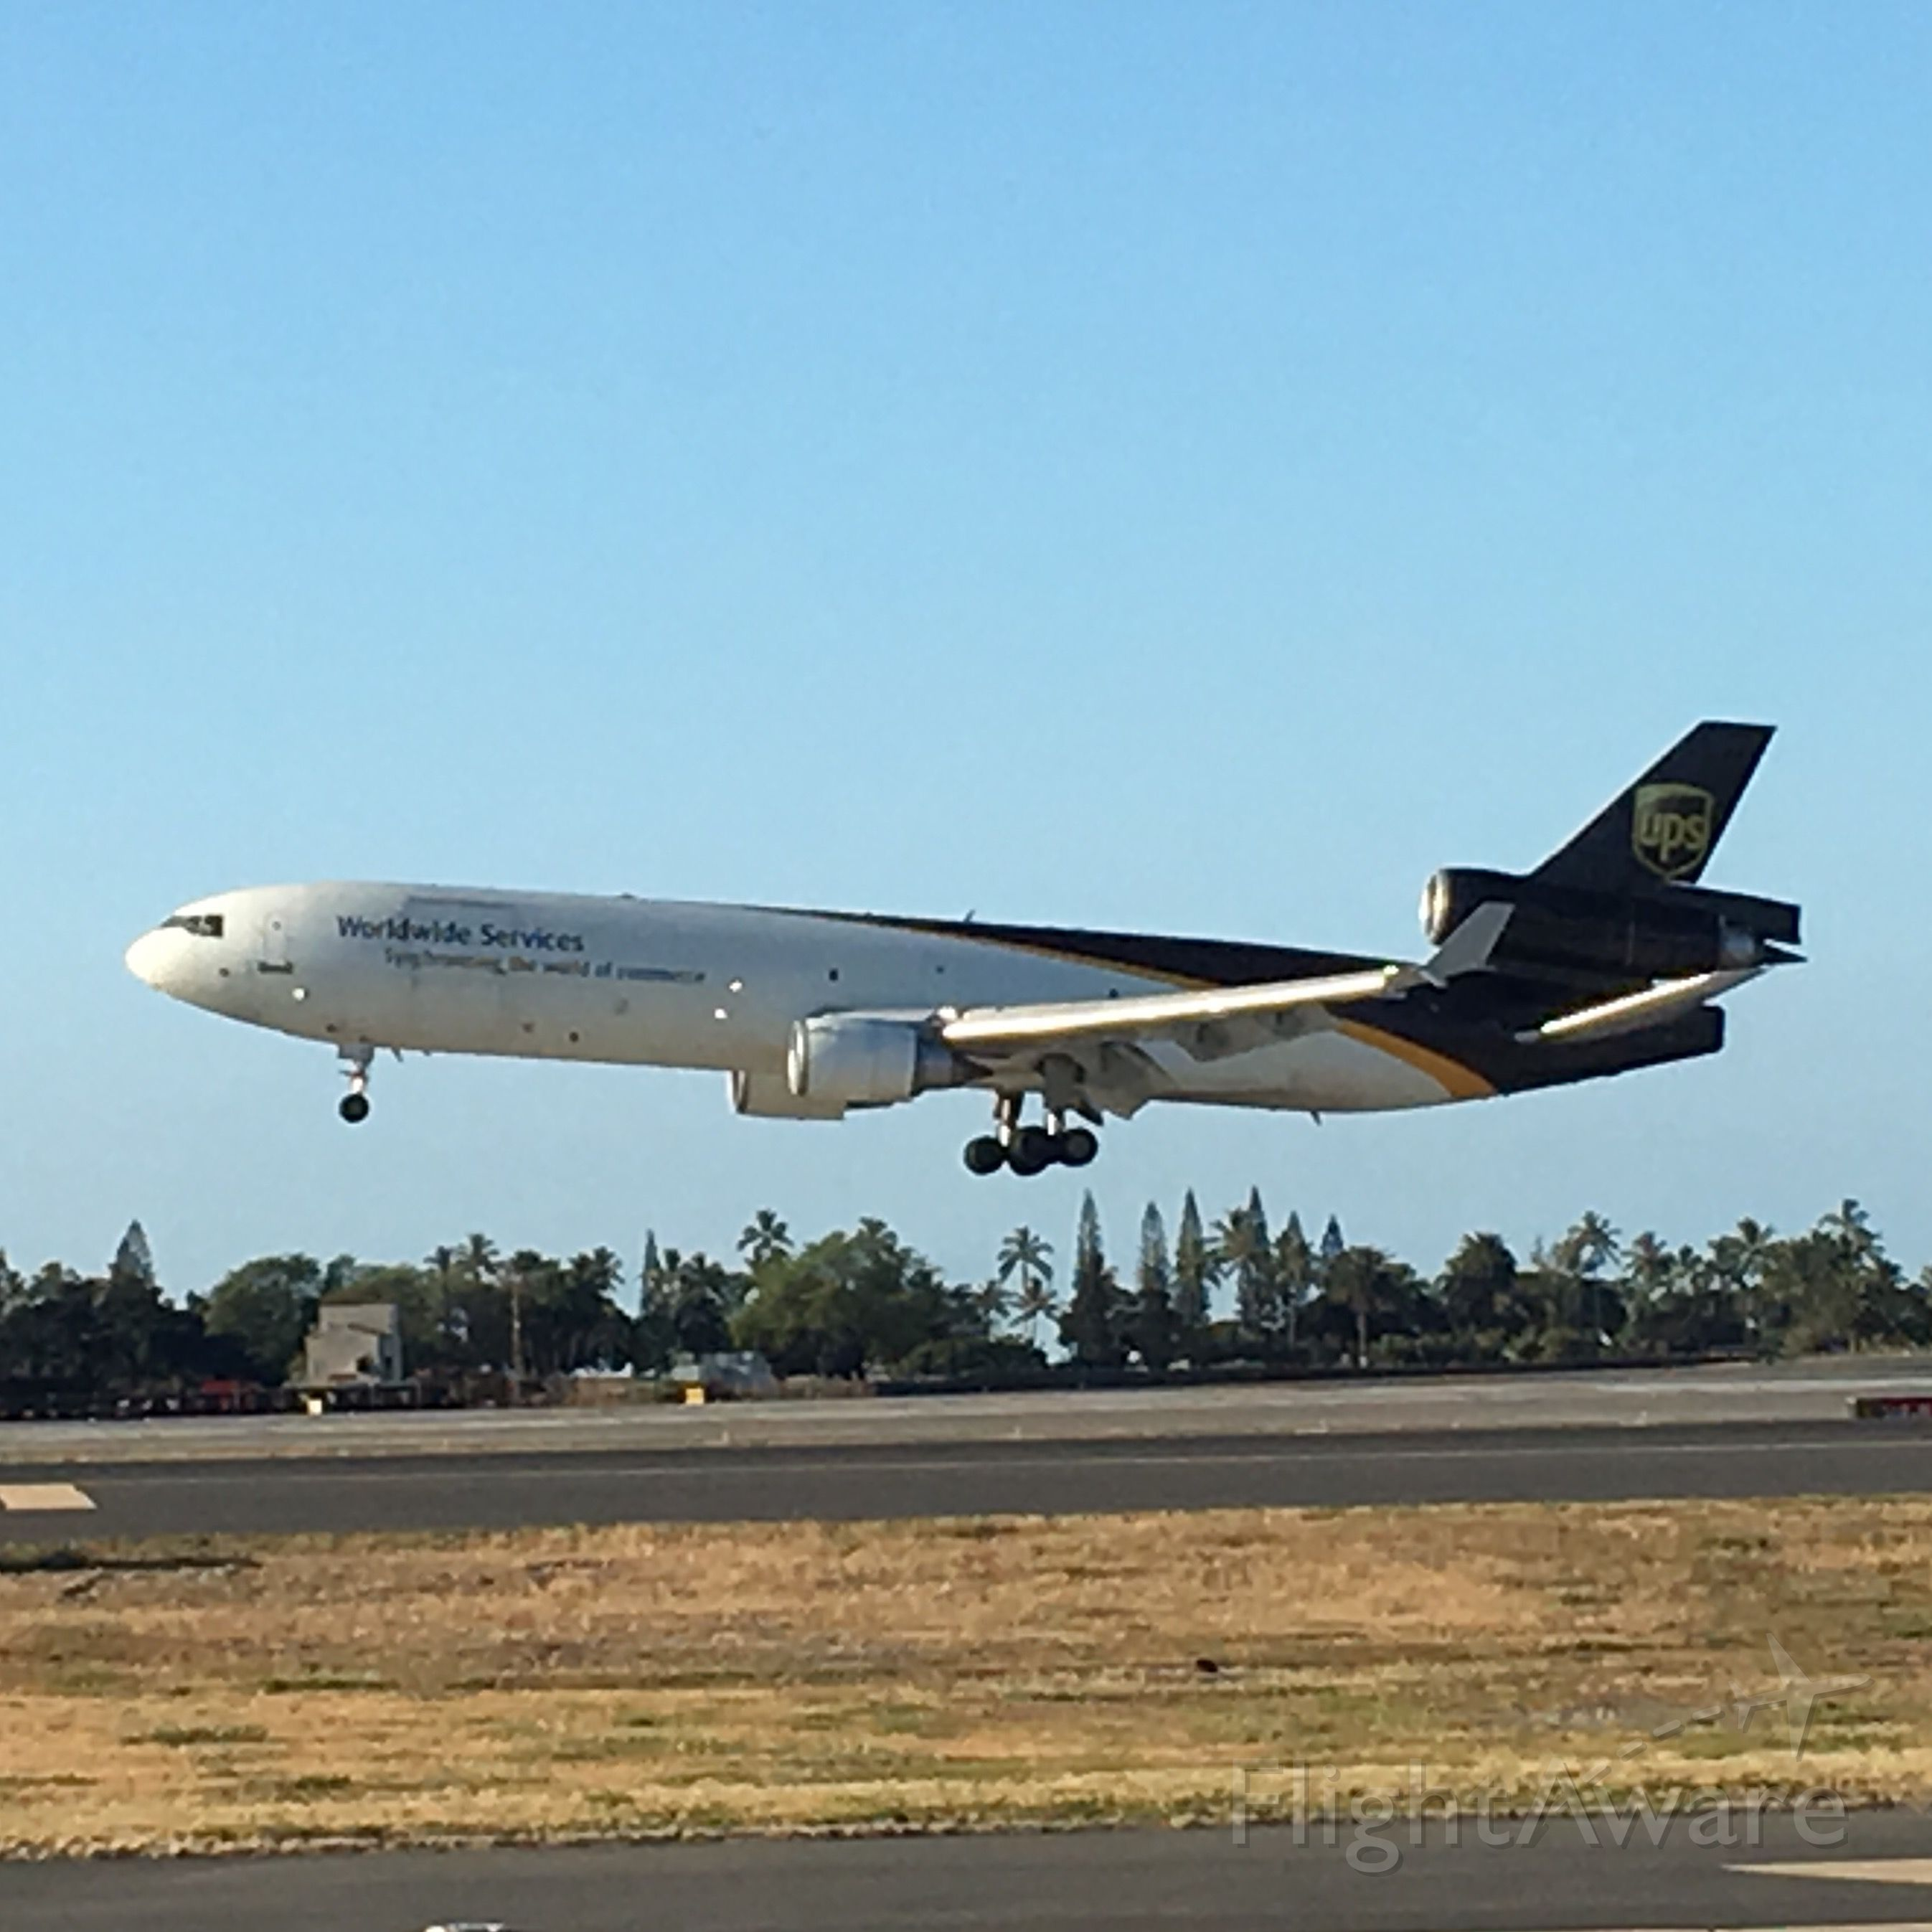 Boeing MD-11 — - A UPS MD-11 arrives at Honolulu International Airport